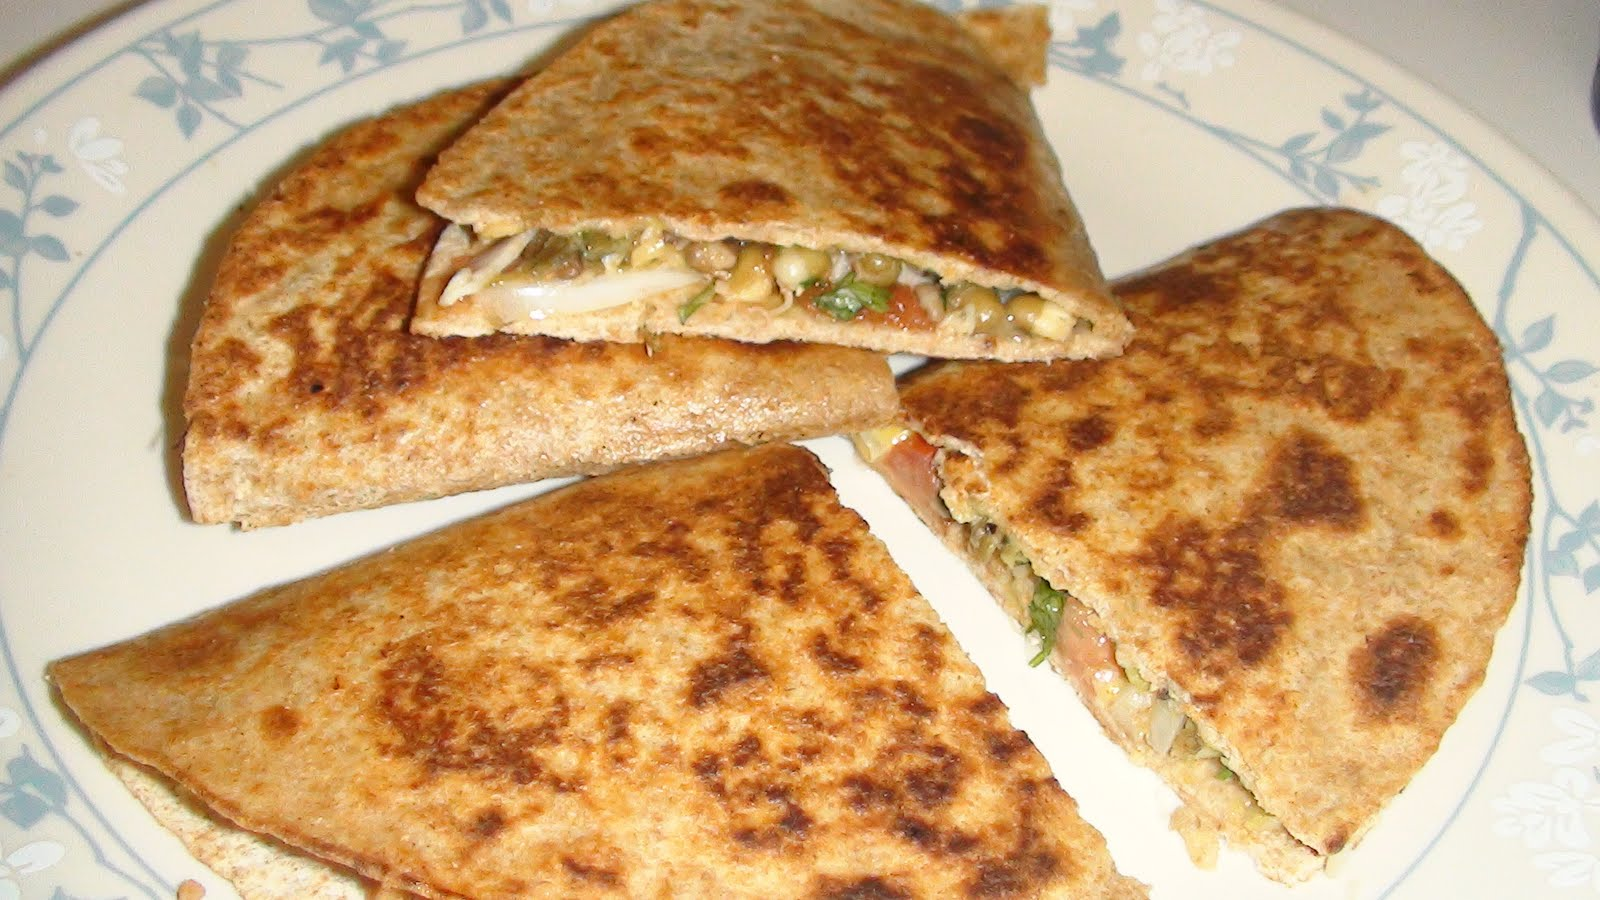 Queen of my kitchen: Sprouts Quesadilla